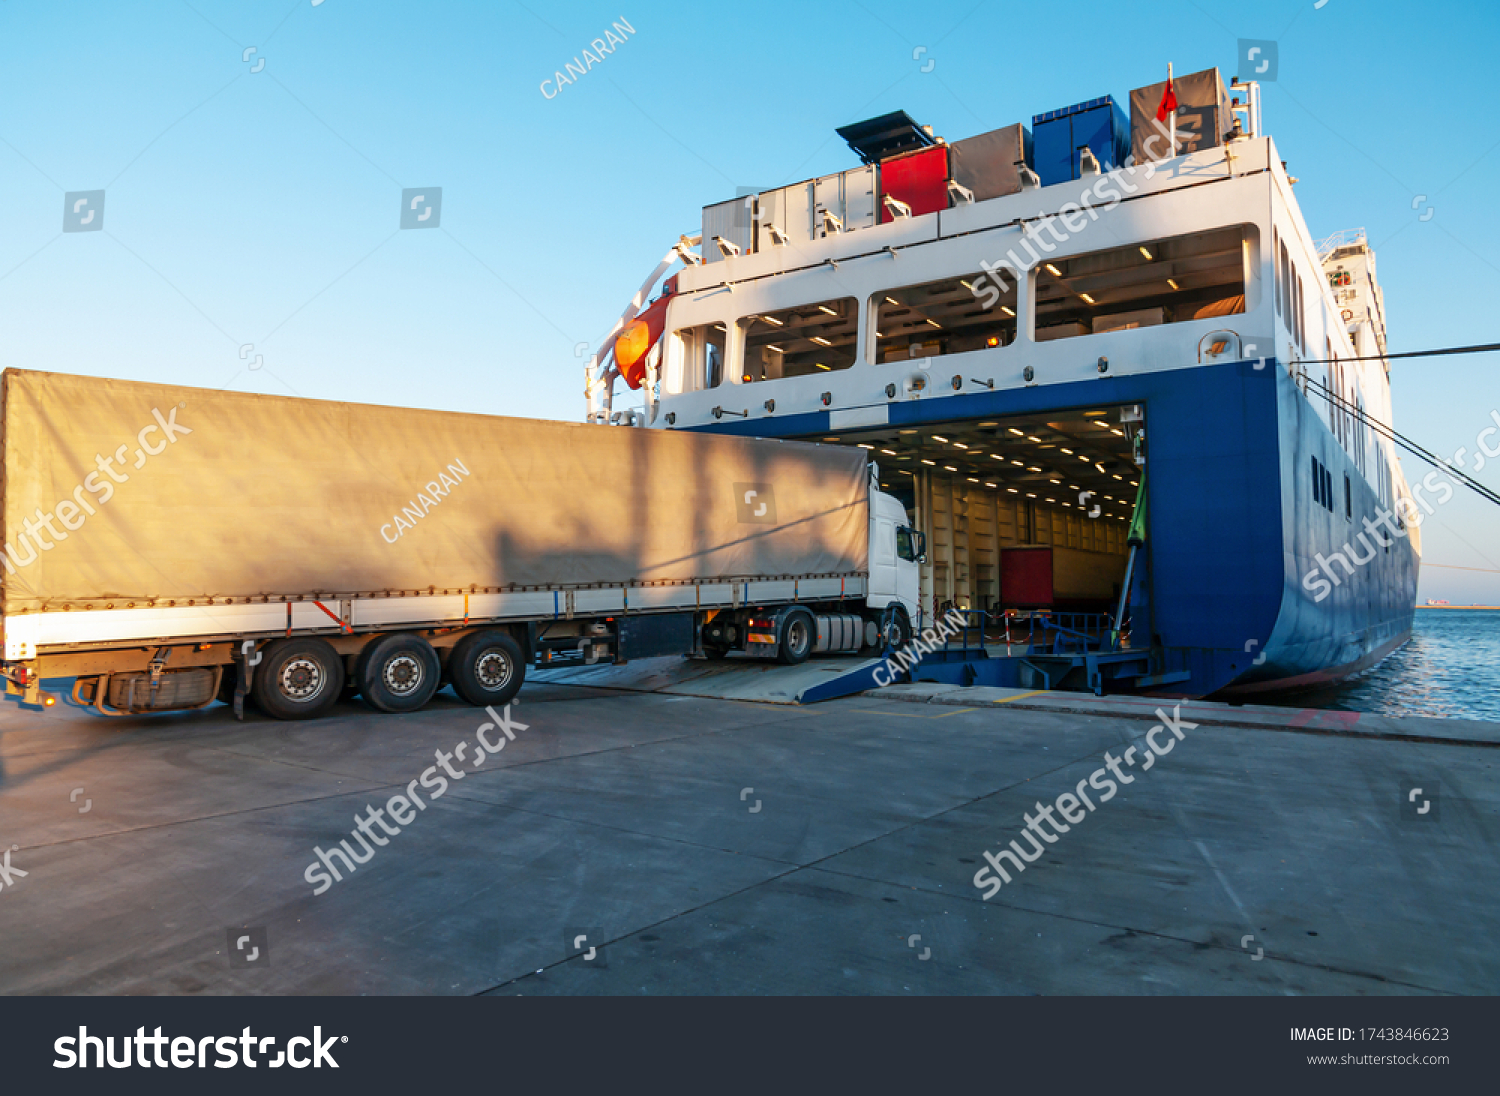 Ferry and Trucking Transportation - RO-RO Transport (Roll On/Roll Off) #1743846623